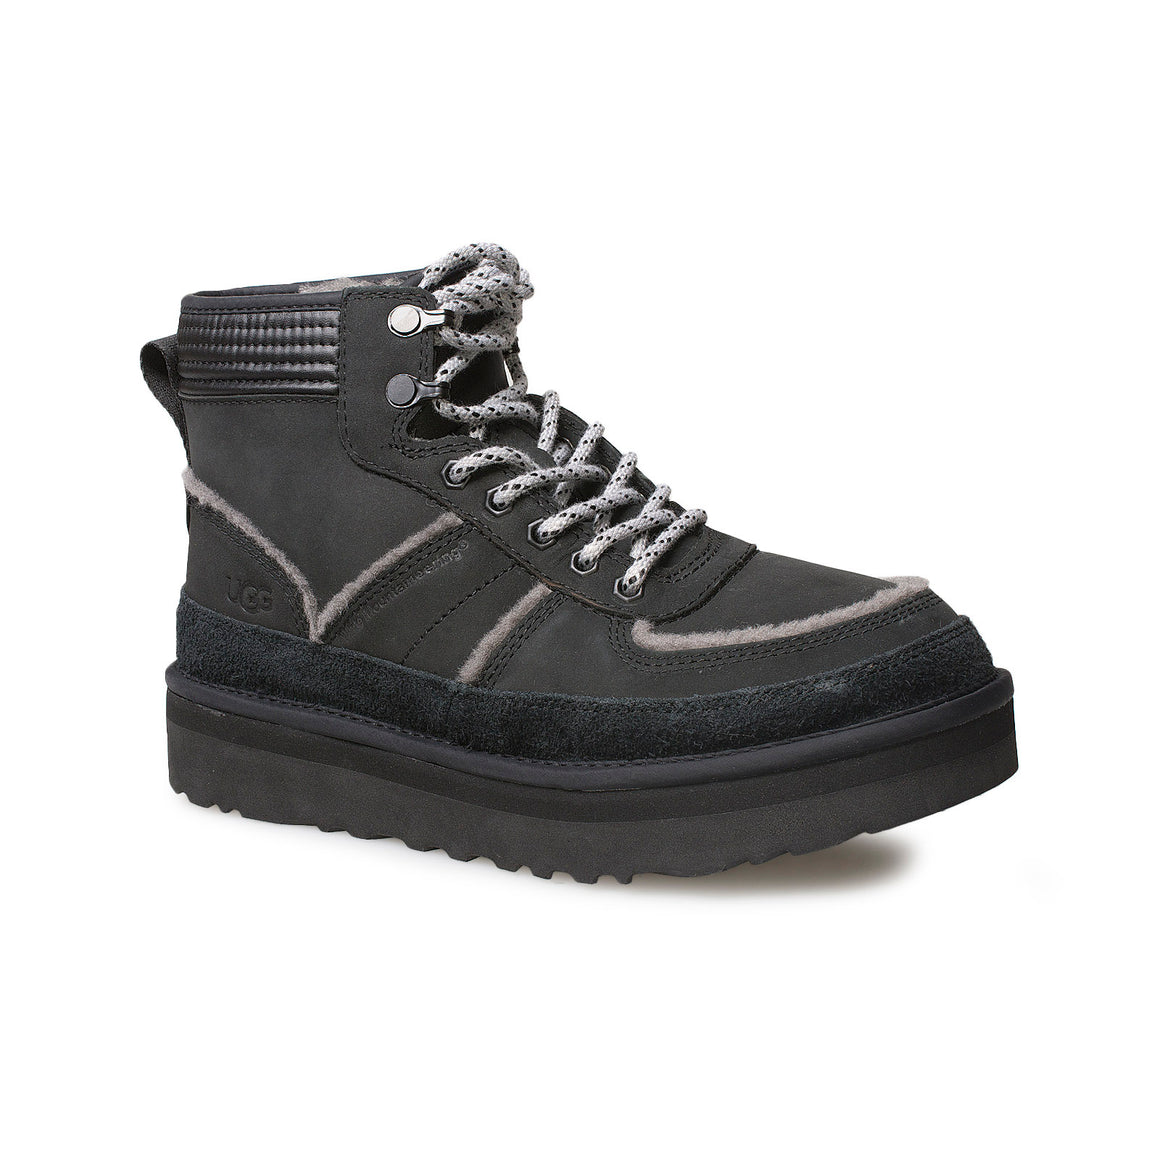 UGG + White Mountaineering Highland Sport Black Boots - Men's